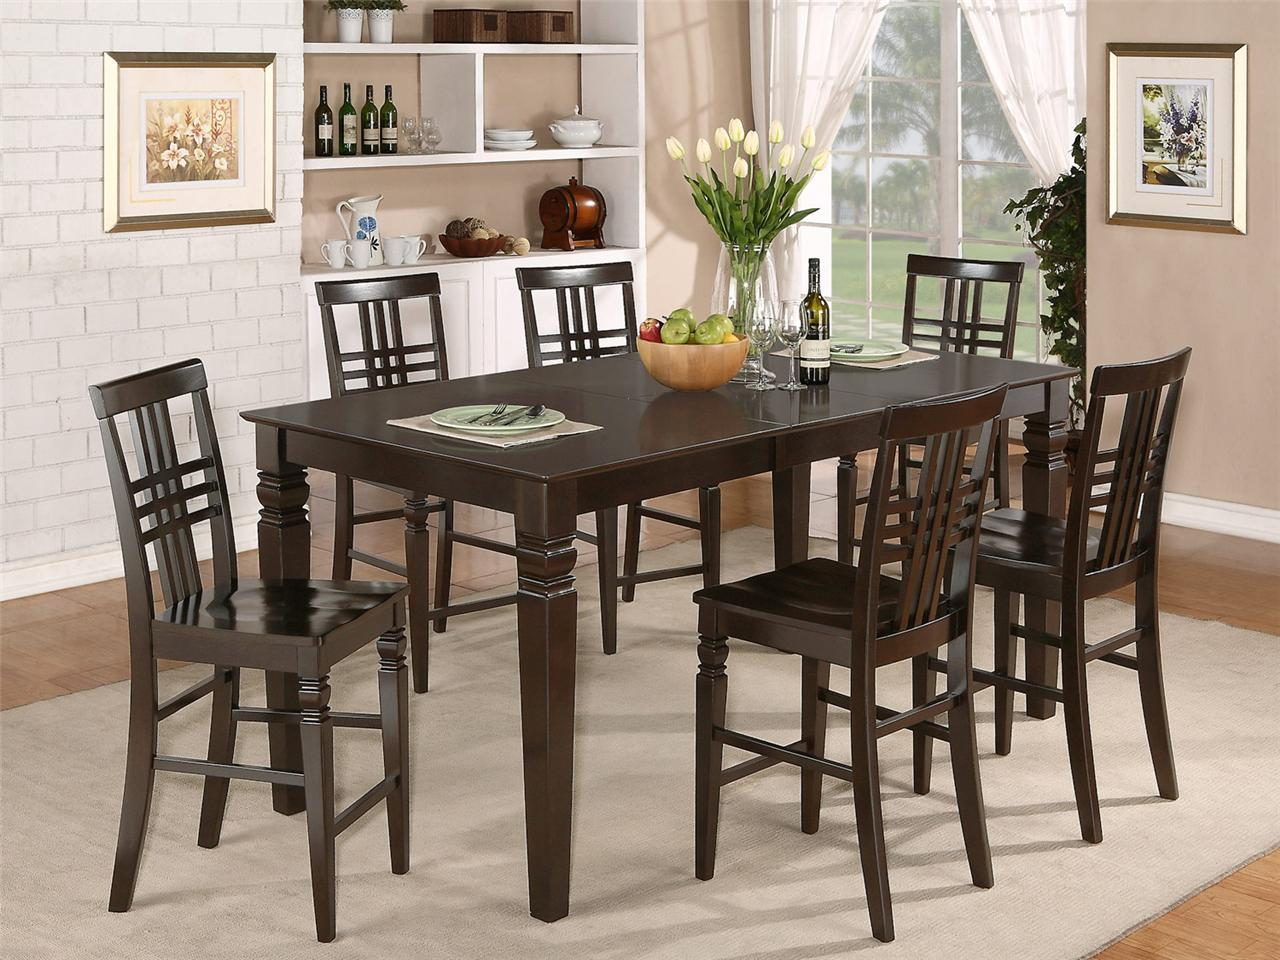 7PC RECTANGULAR COUNTER HEIGHT DINING ROOM TABLE SET amp 6